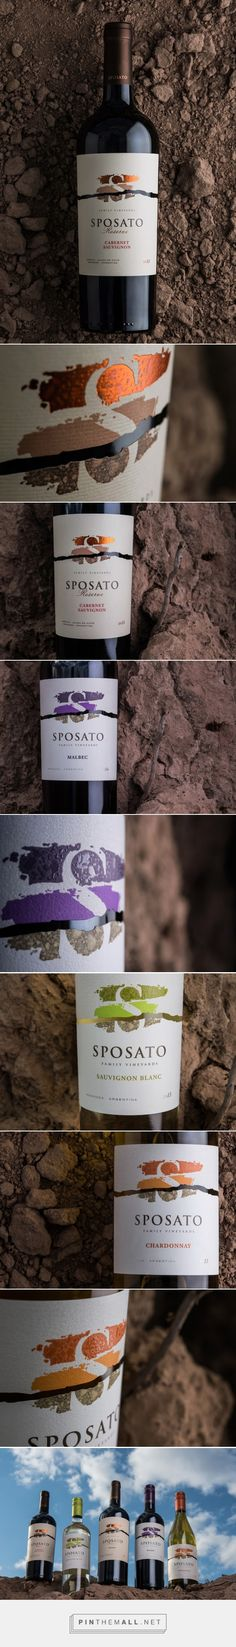 Sposato Family Vineyards - Packaging of the World - Creative Package Design Gallery - http://www.packagingoftheworld.com/2016/01/sposato-family-vineyards.html